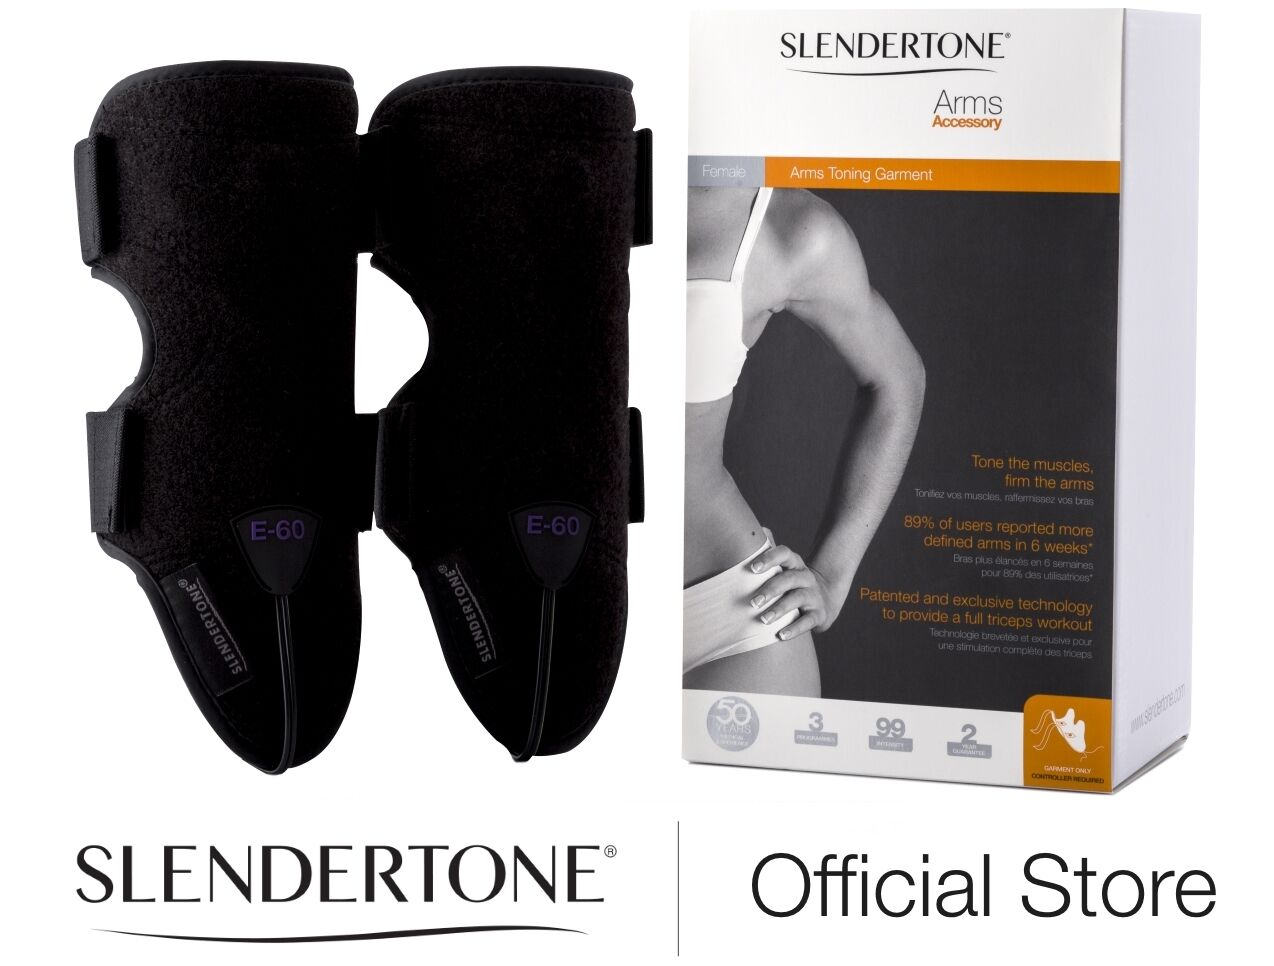 SLENDERTONE TRICEP MUSCLE ARM TONING GARMENT - NO CONTROLLER